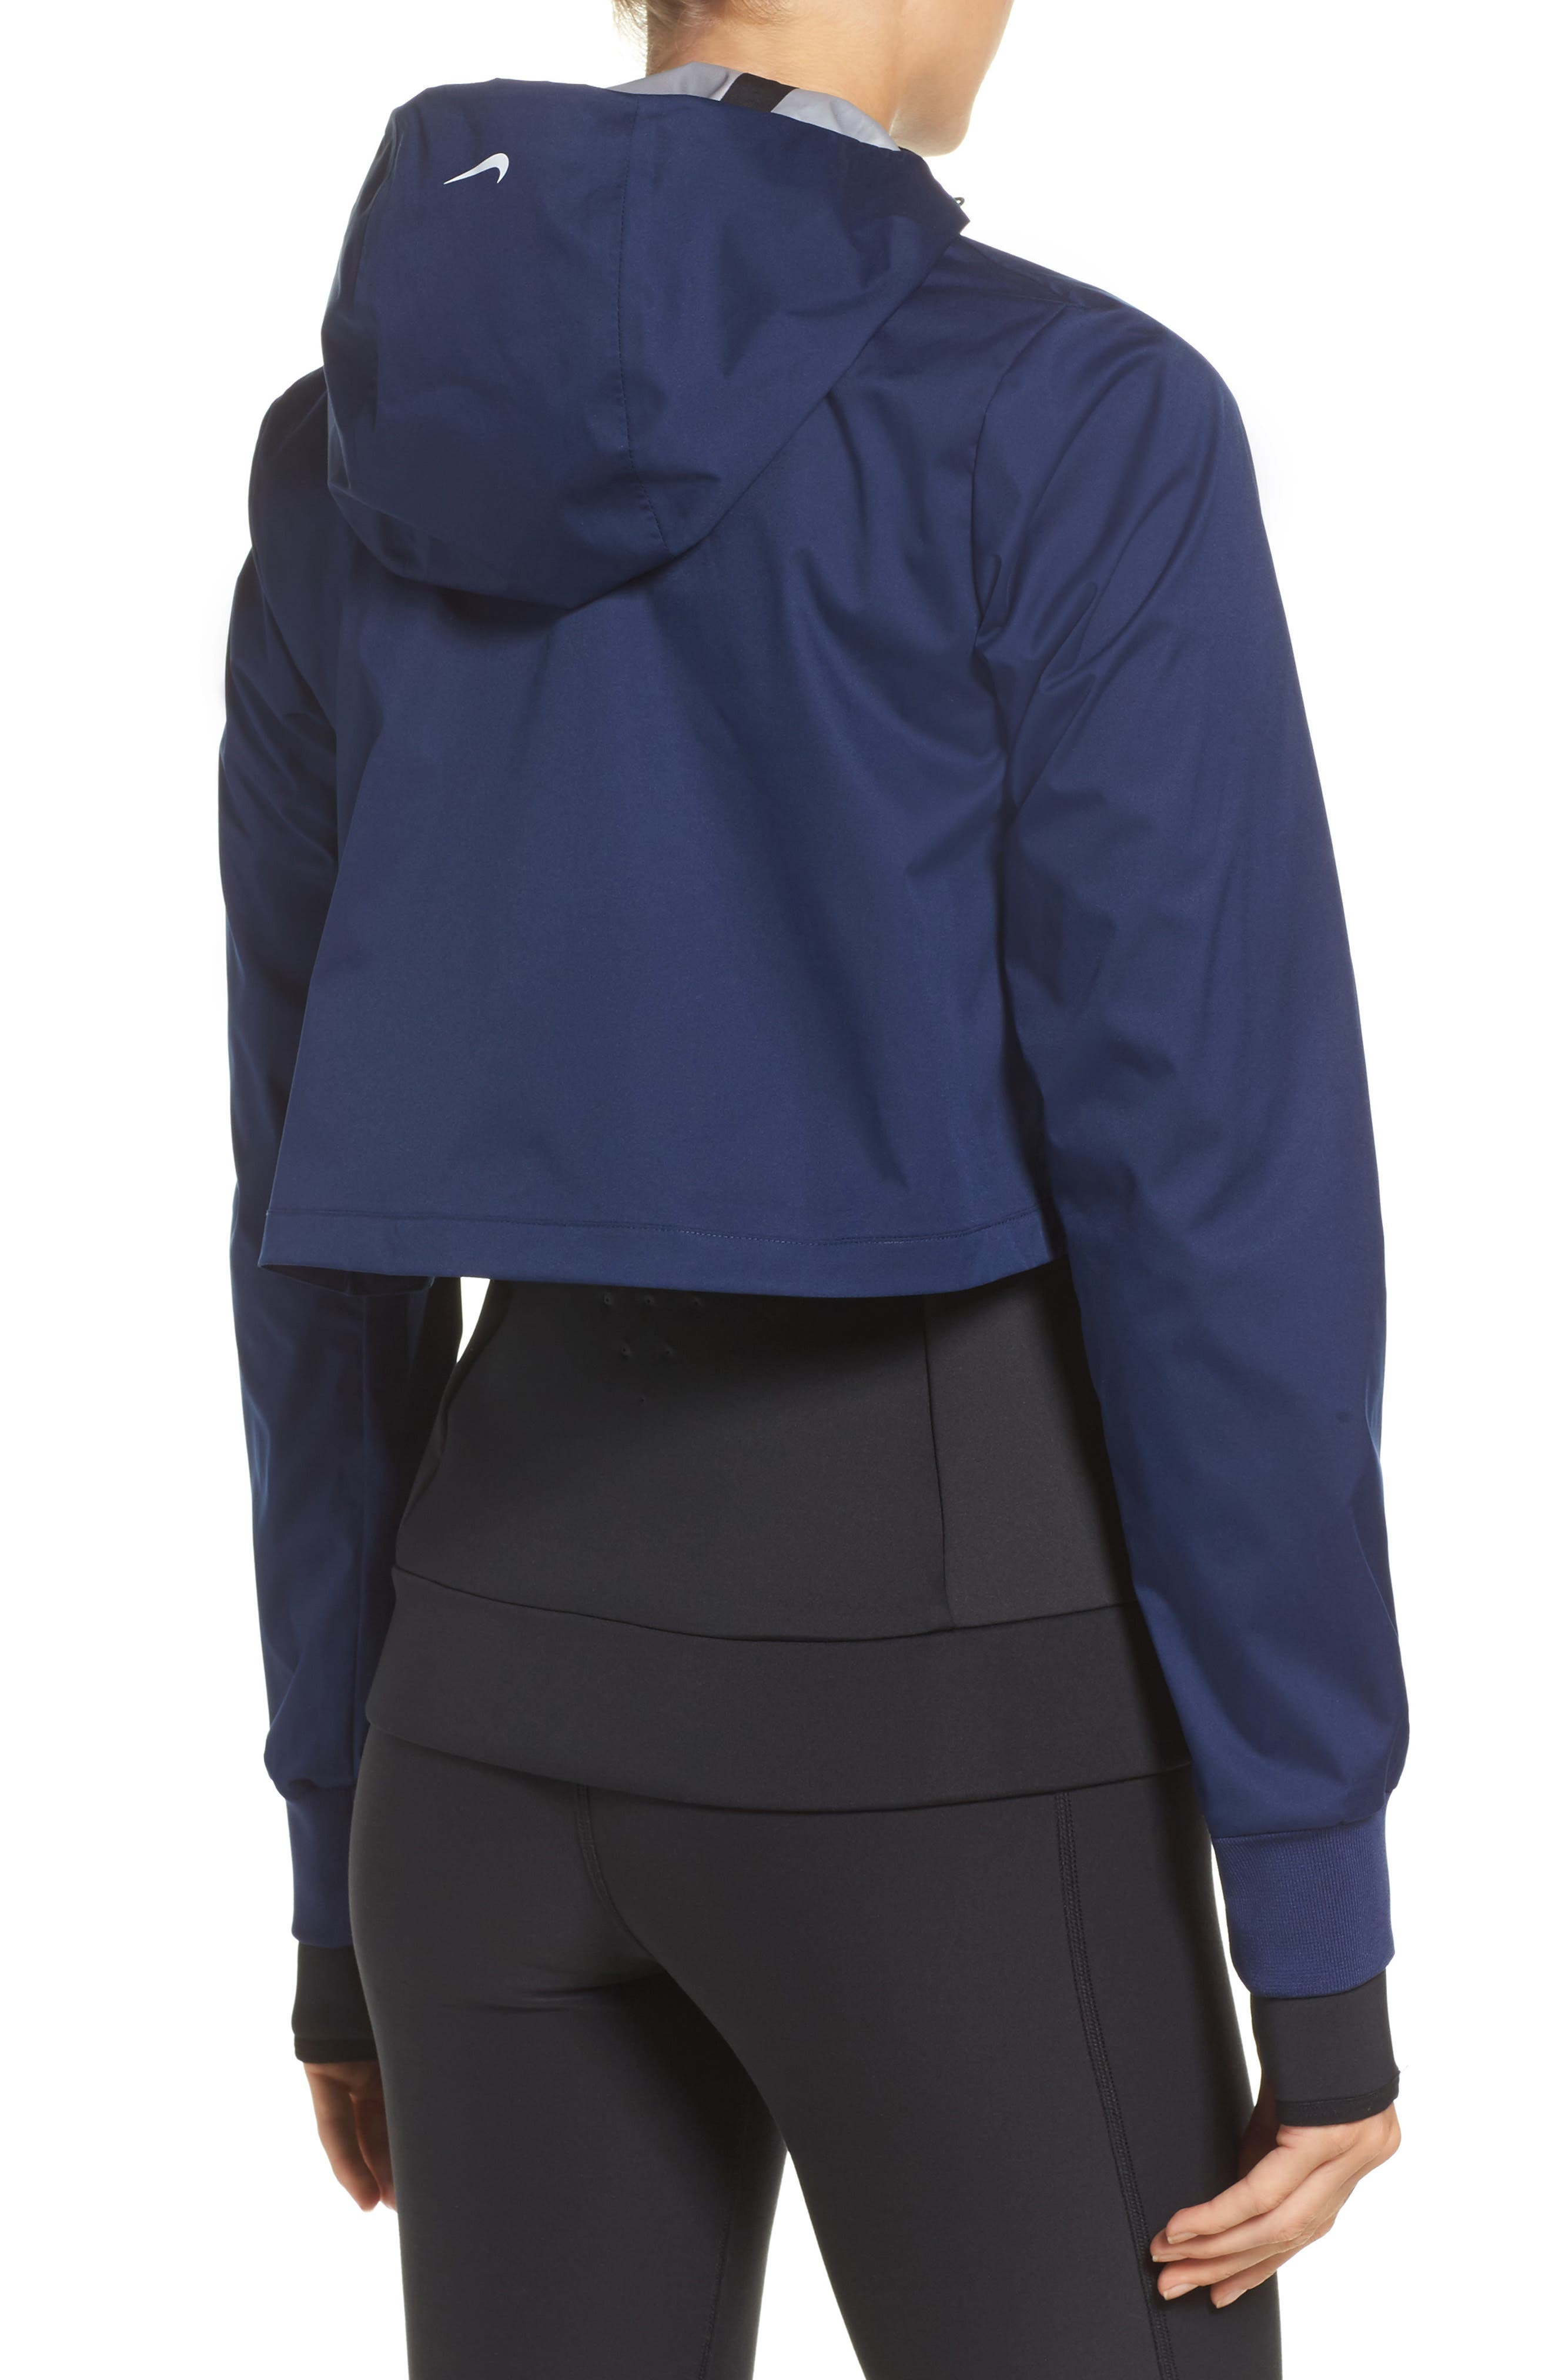 Therma Shield 2-in-1 Training Jacket,                             Alternate thumbnail 3, color,                             Binary Blue/ Black/ White